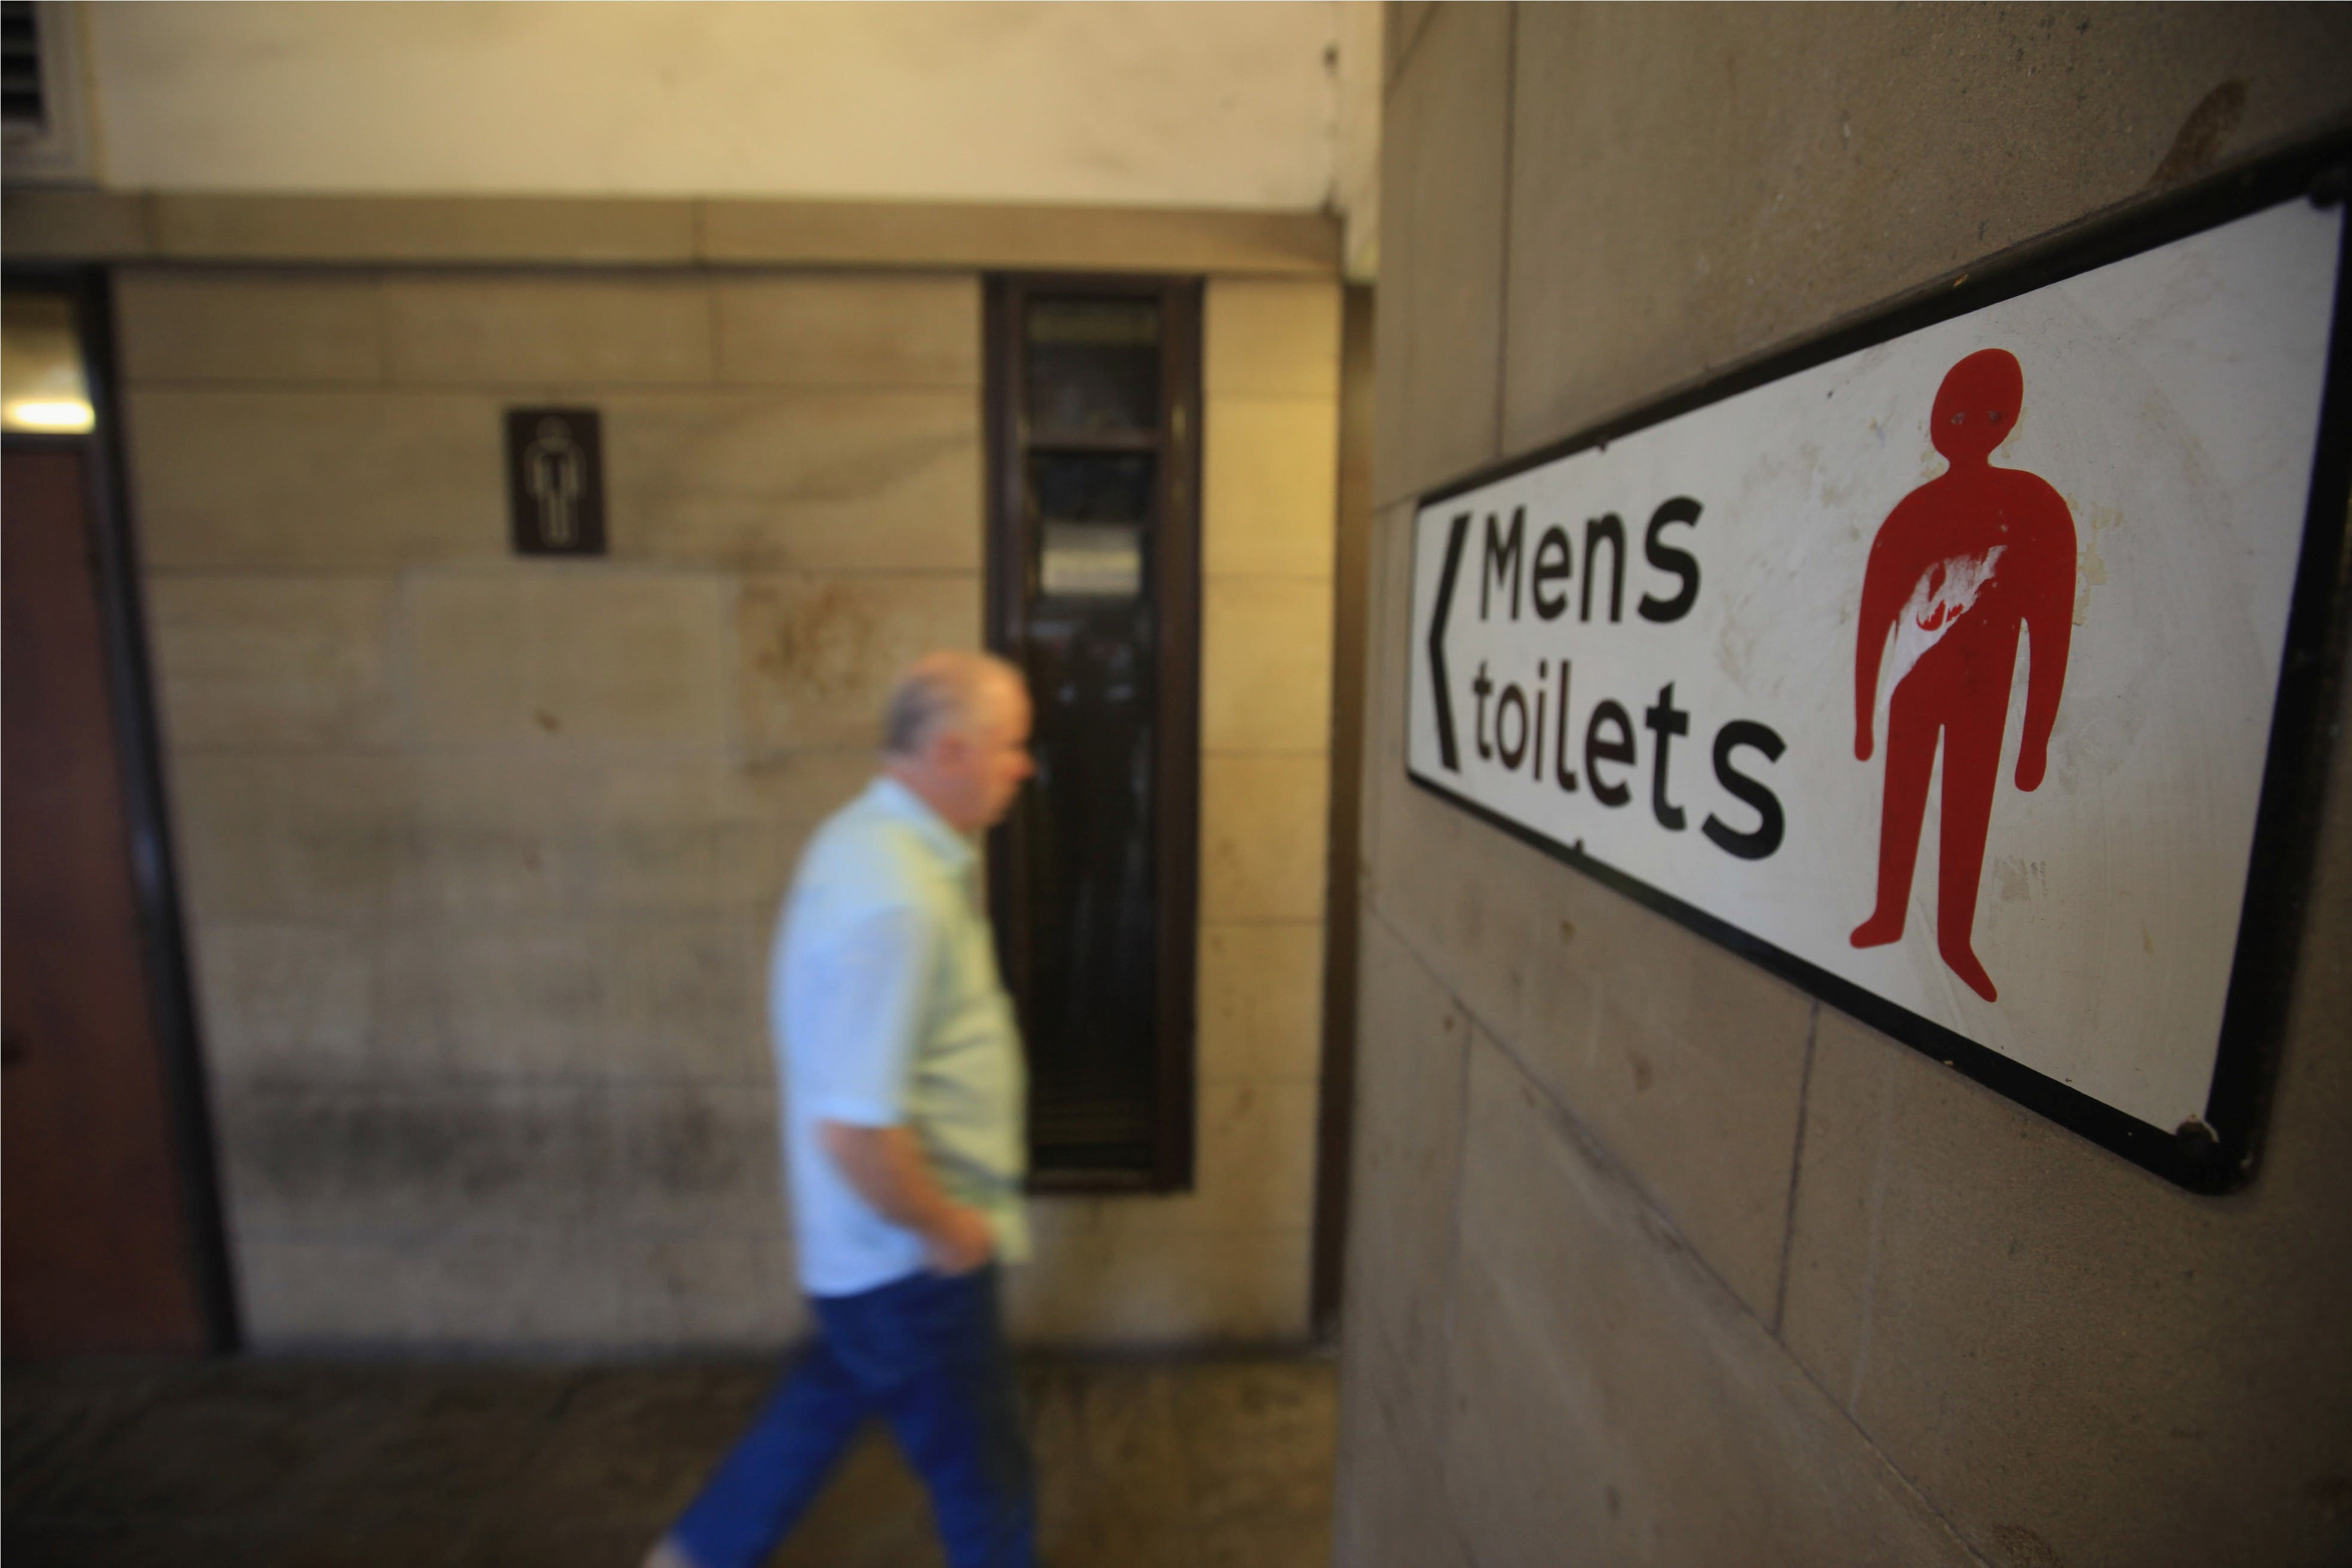 Public urination is often done covertly making perpetrators harder to catch.